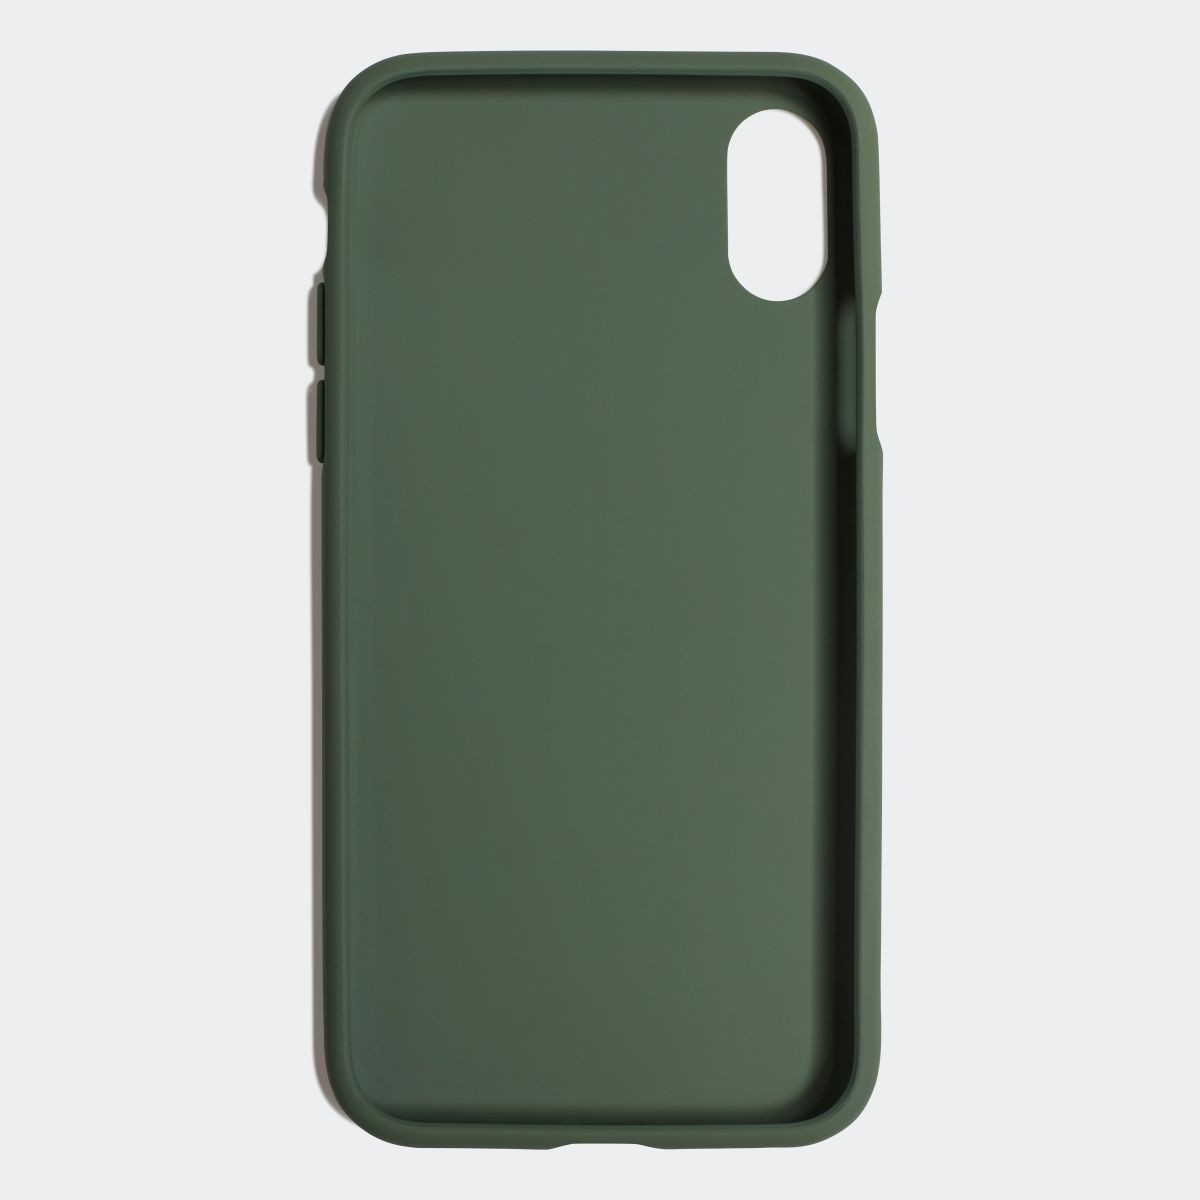 iPhone X用 adicolor Moulded Case Trace Green 31636の商品画像|2